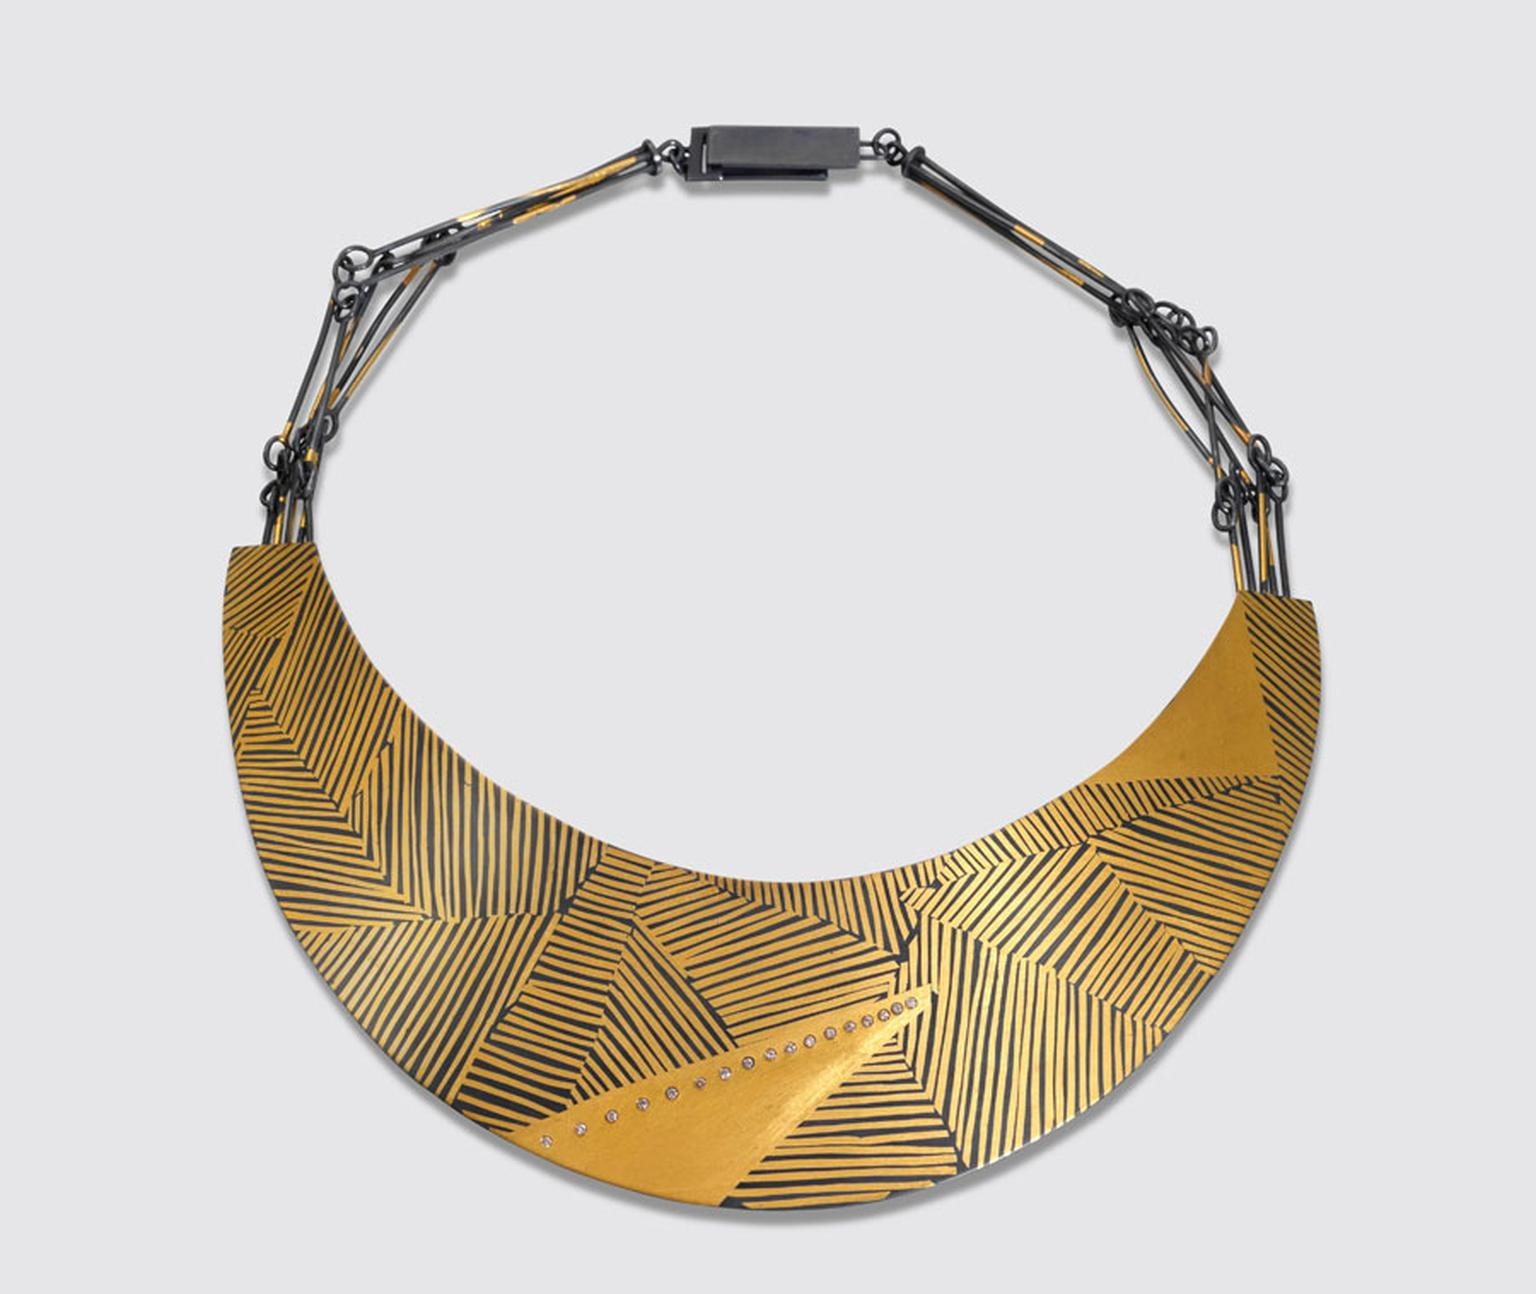 Goldsmiths-Patel-Shivani-Linear-Necklace-oxidised-silver-24k-gold-coloured-diamonds.jpg